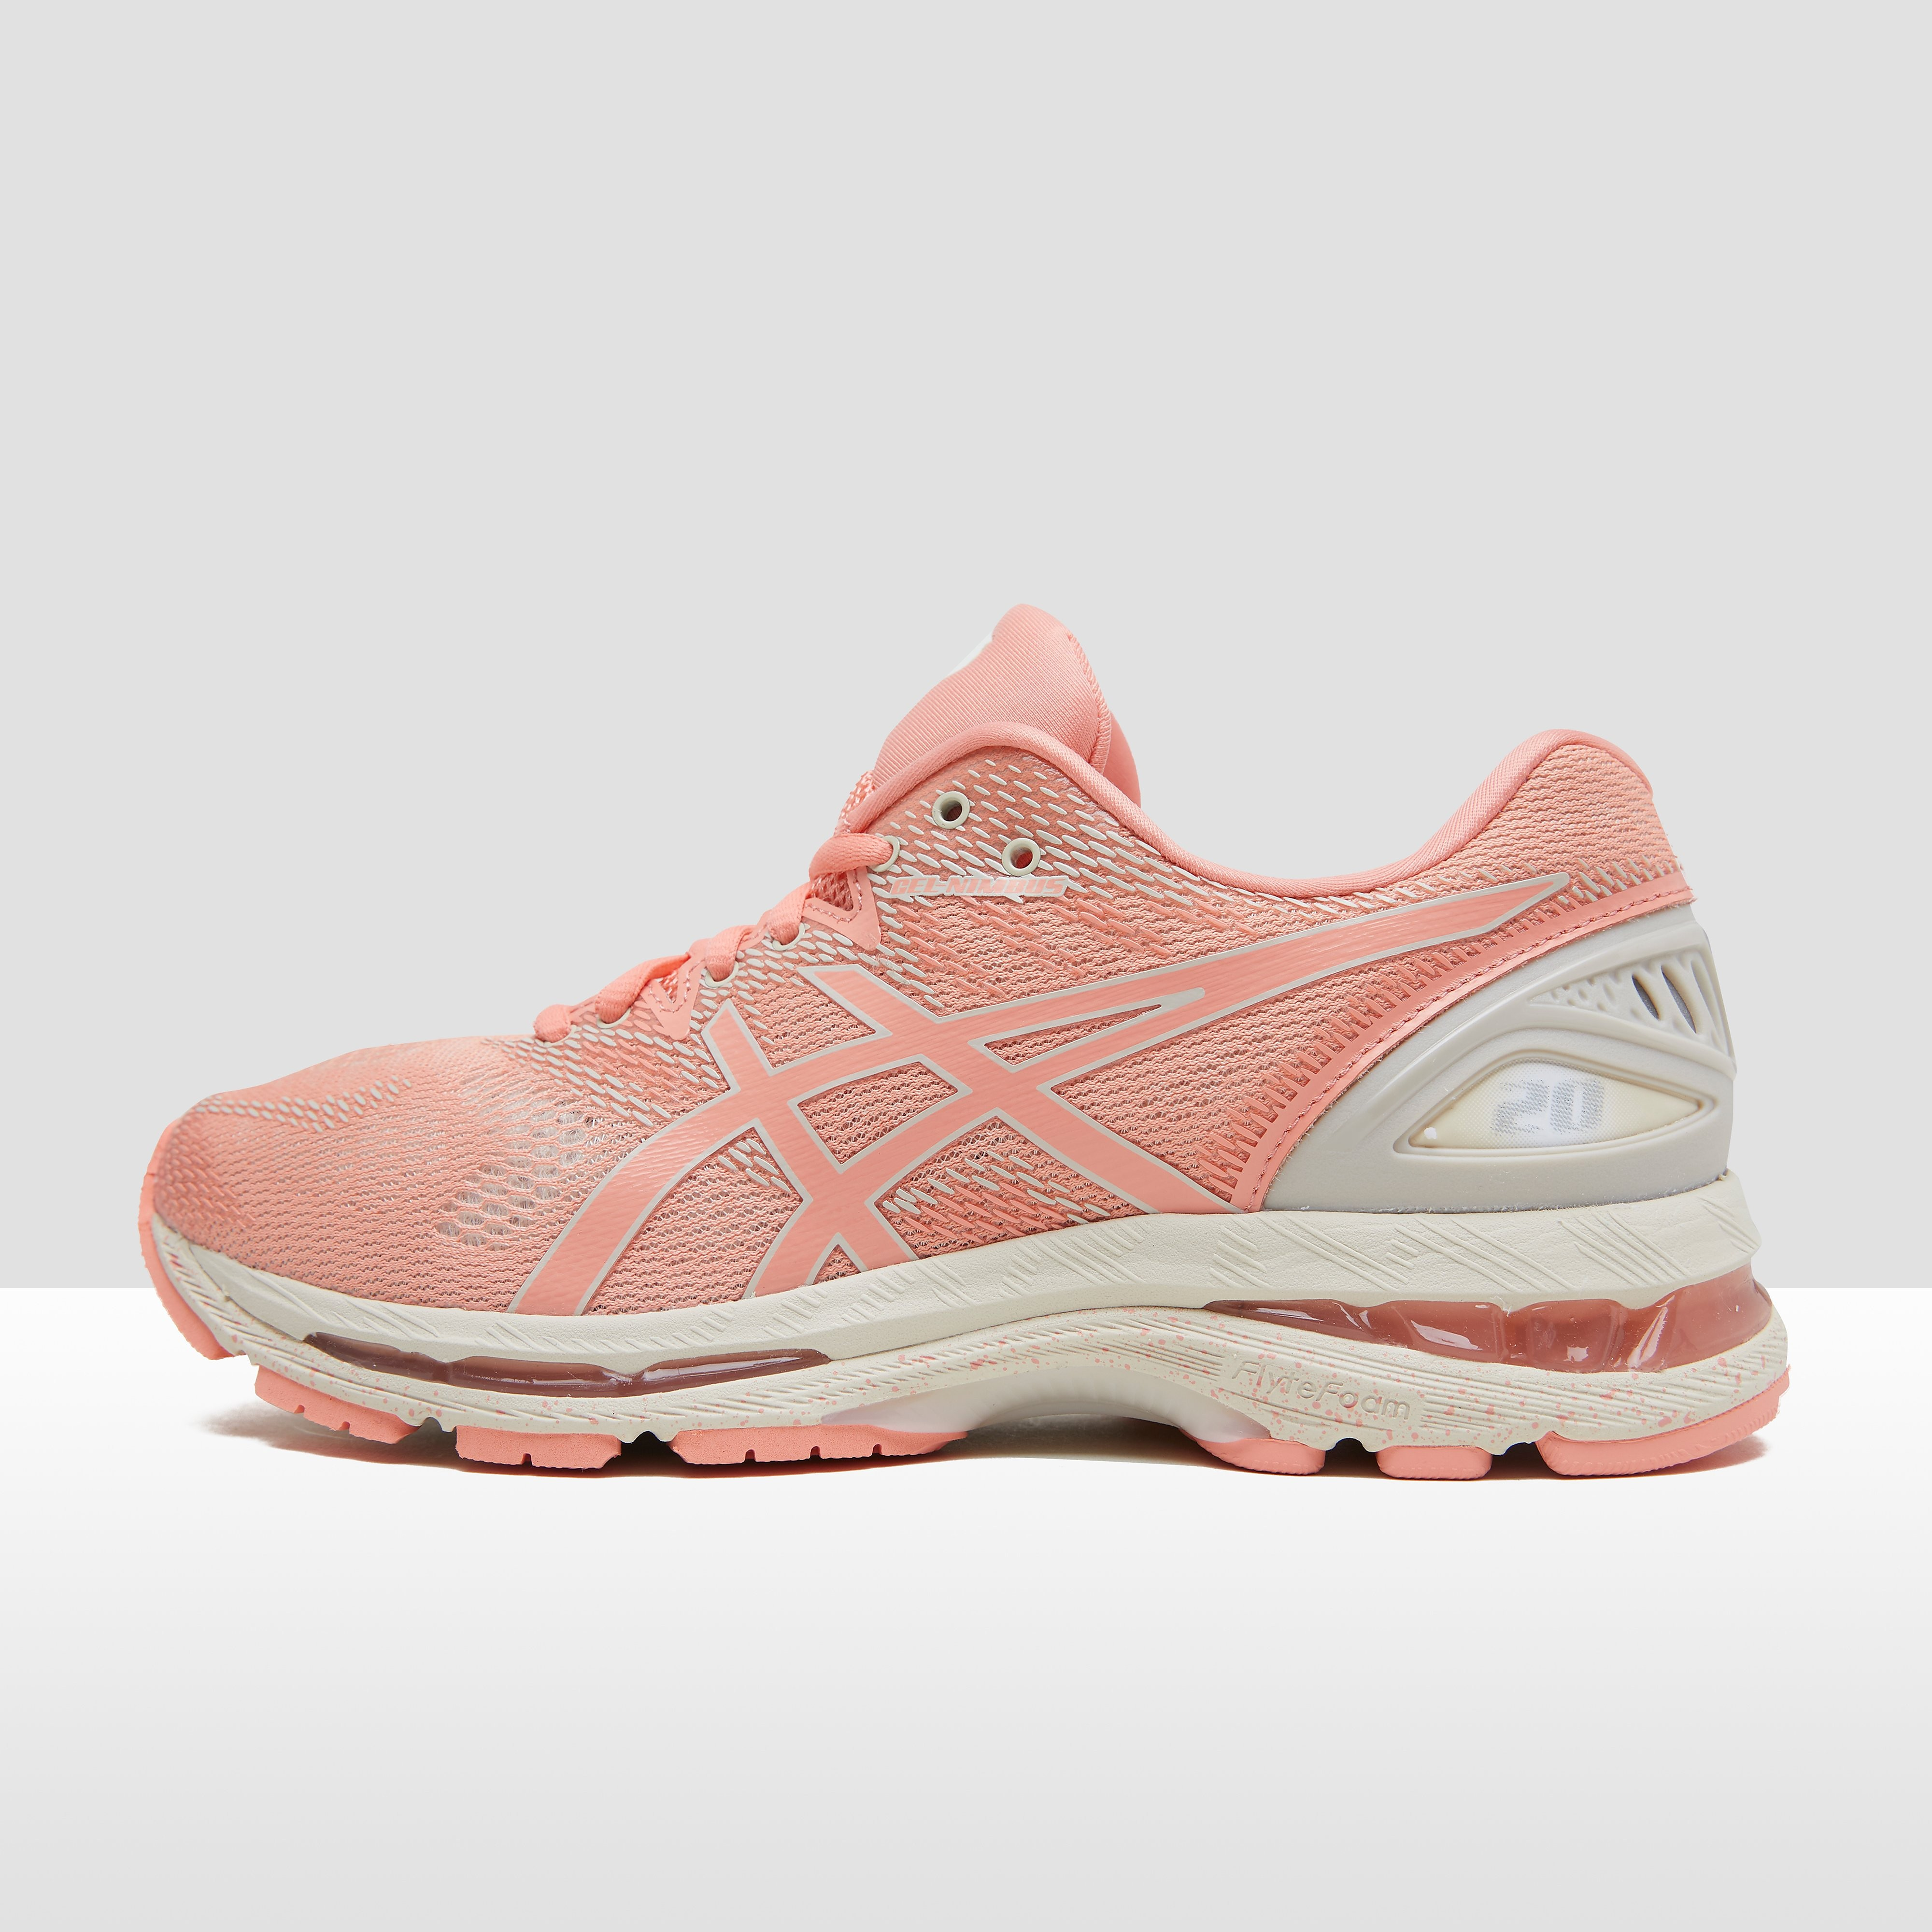 Messieurs Asics Gt-ii, MesFemmes ,, Rouge, Taille: 41,5